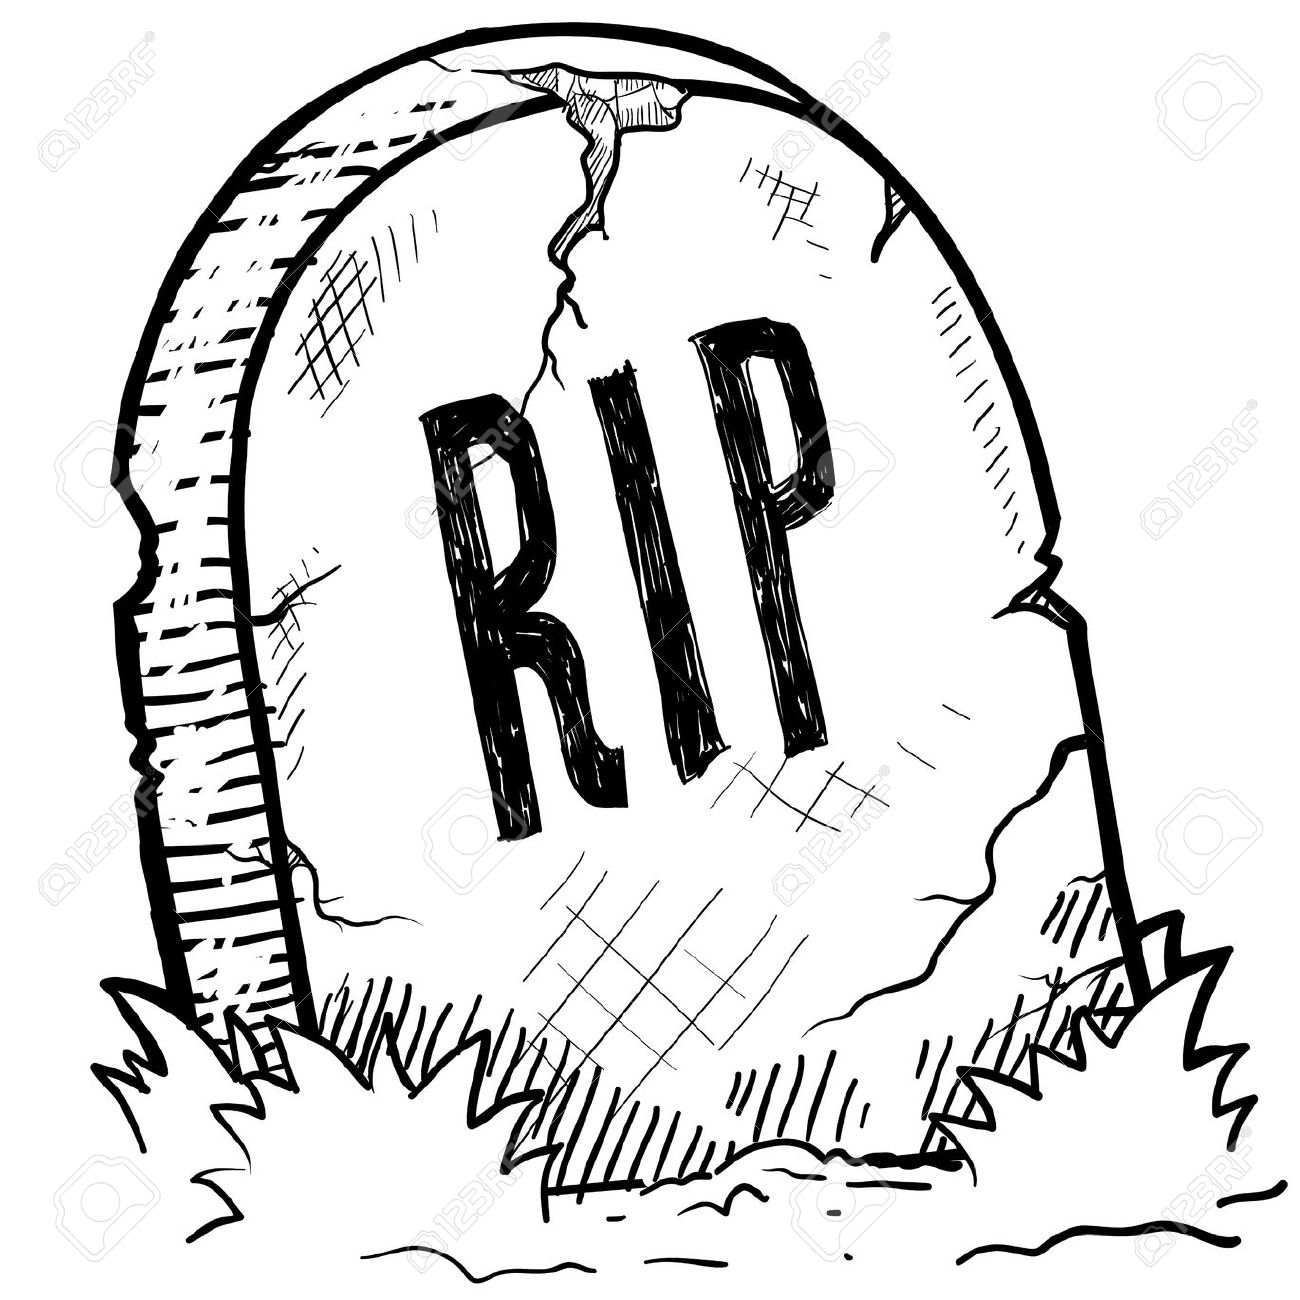 Doodle Style Tombstone With RIP Engraving Sketch In Vector Format.